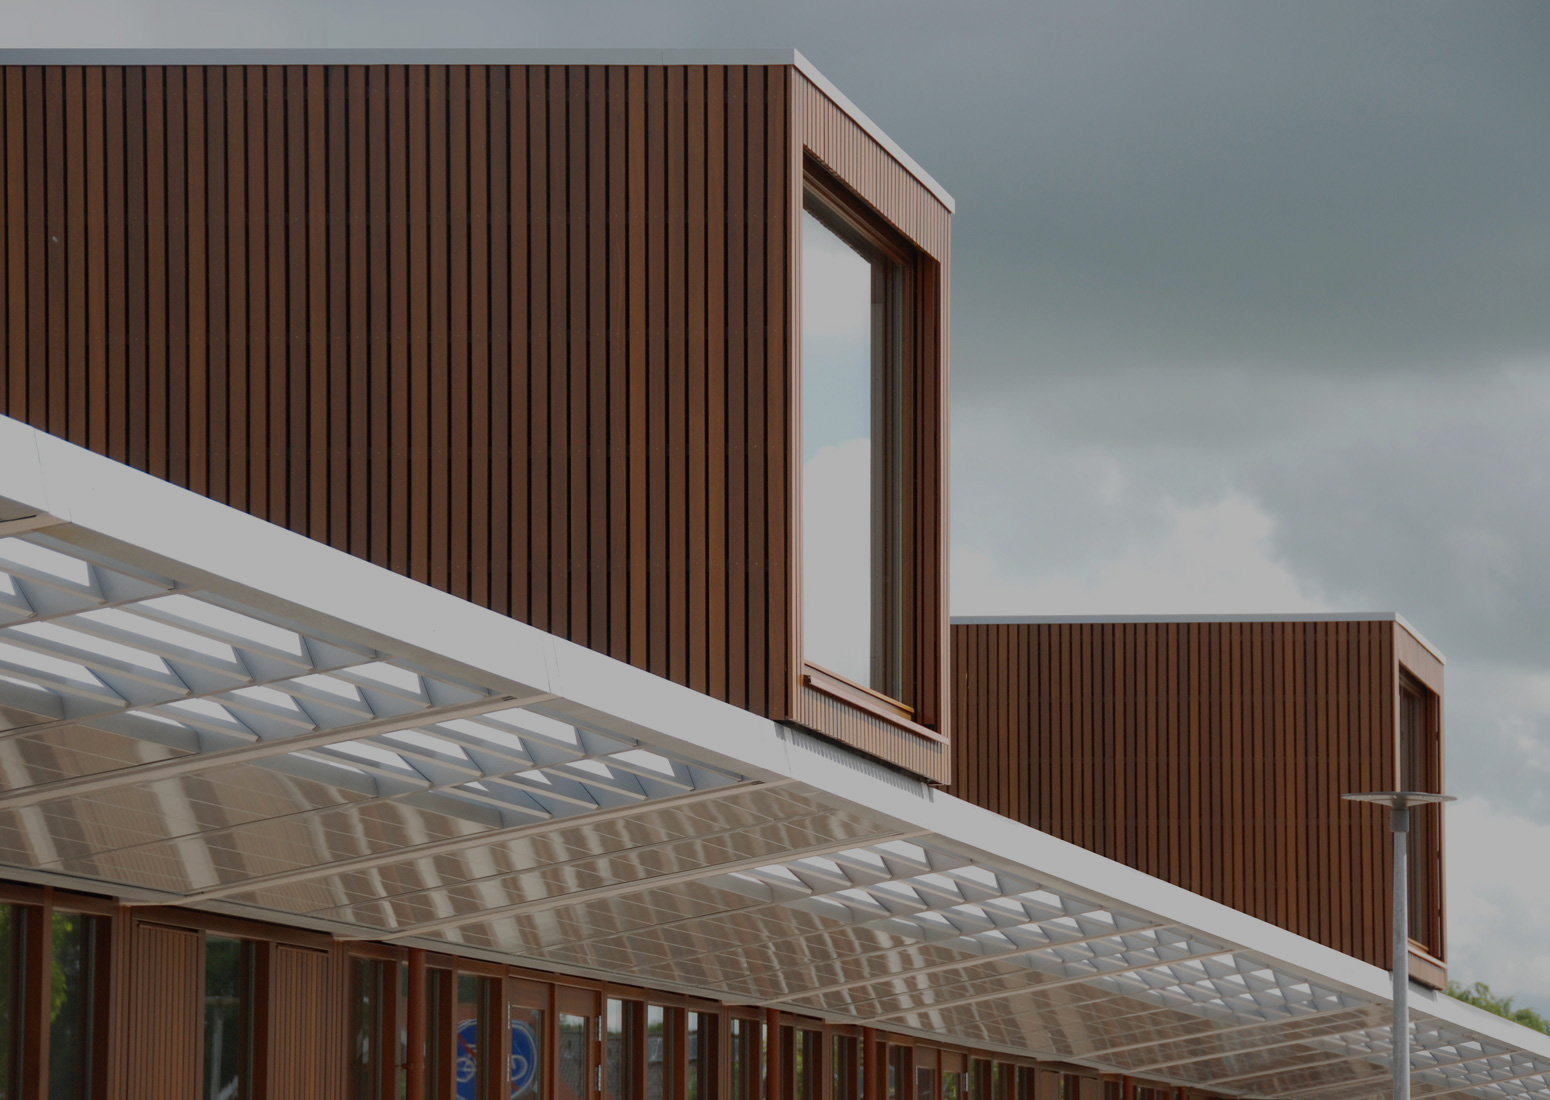 Architectuur brede school Rietweerde